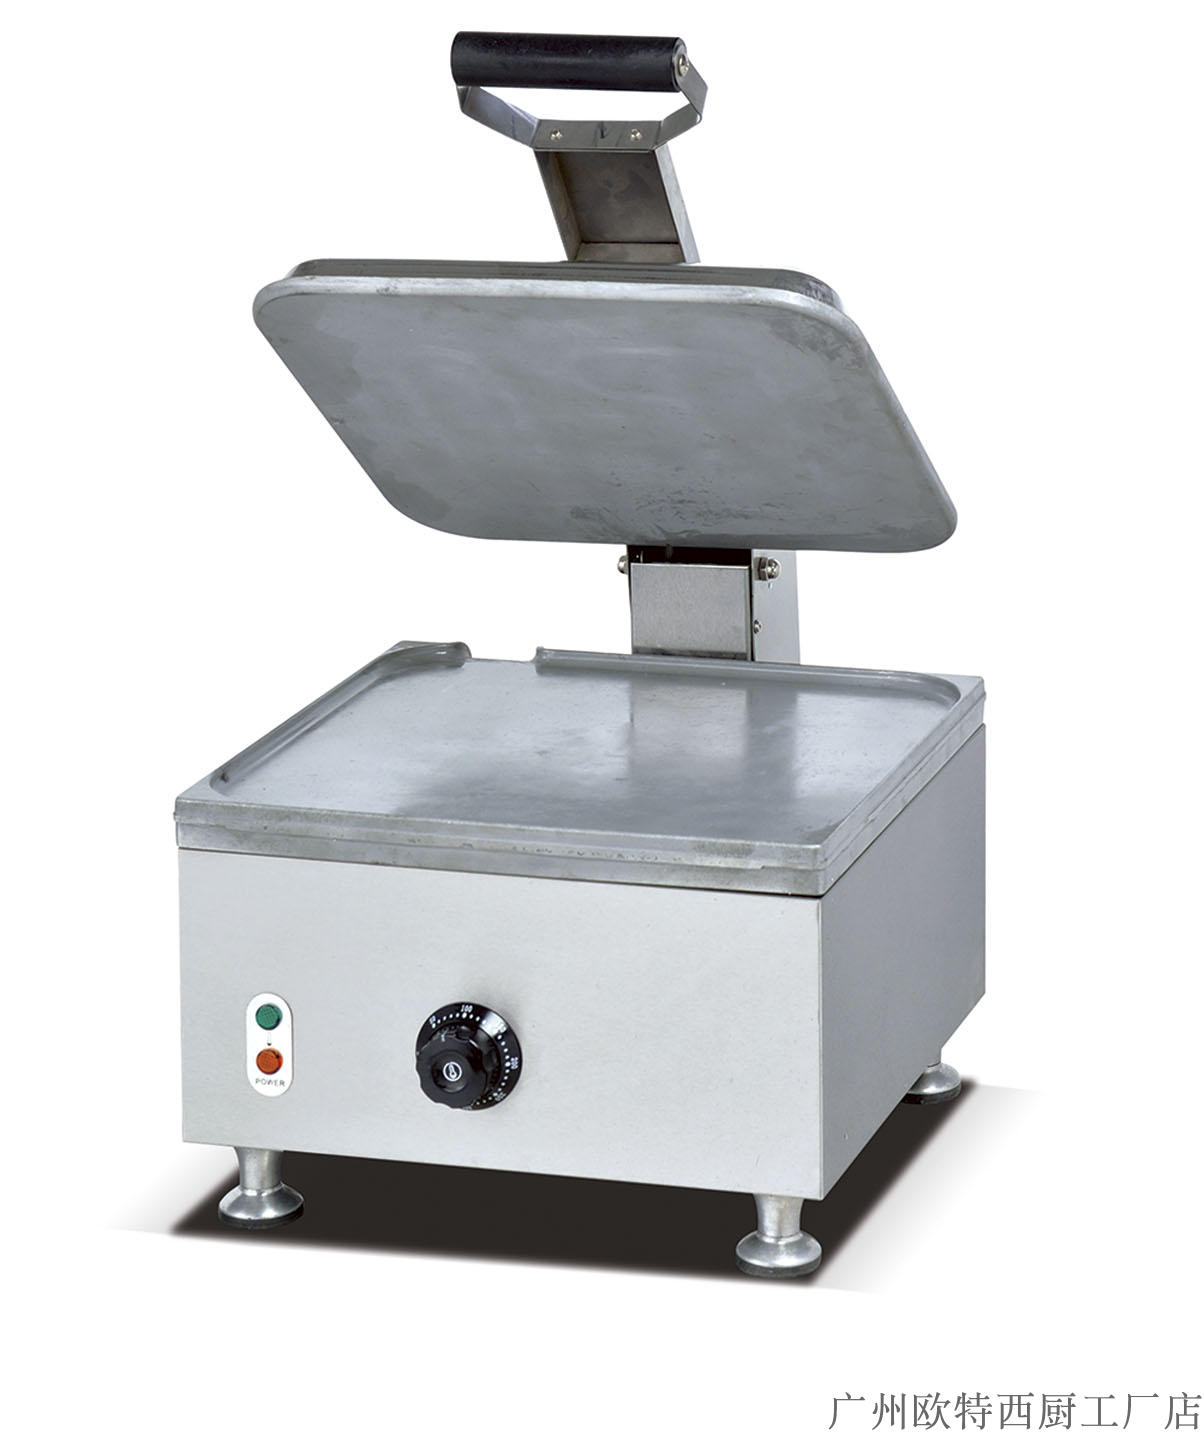 Counter Top Cooking Equipment